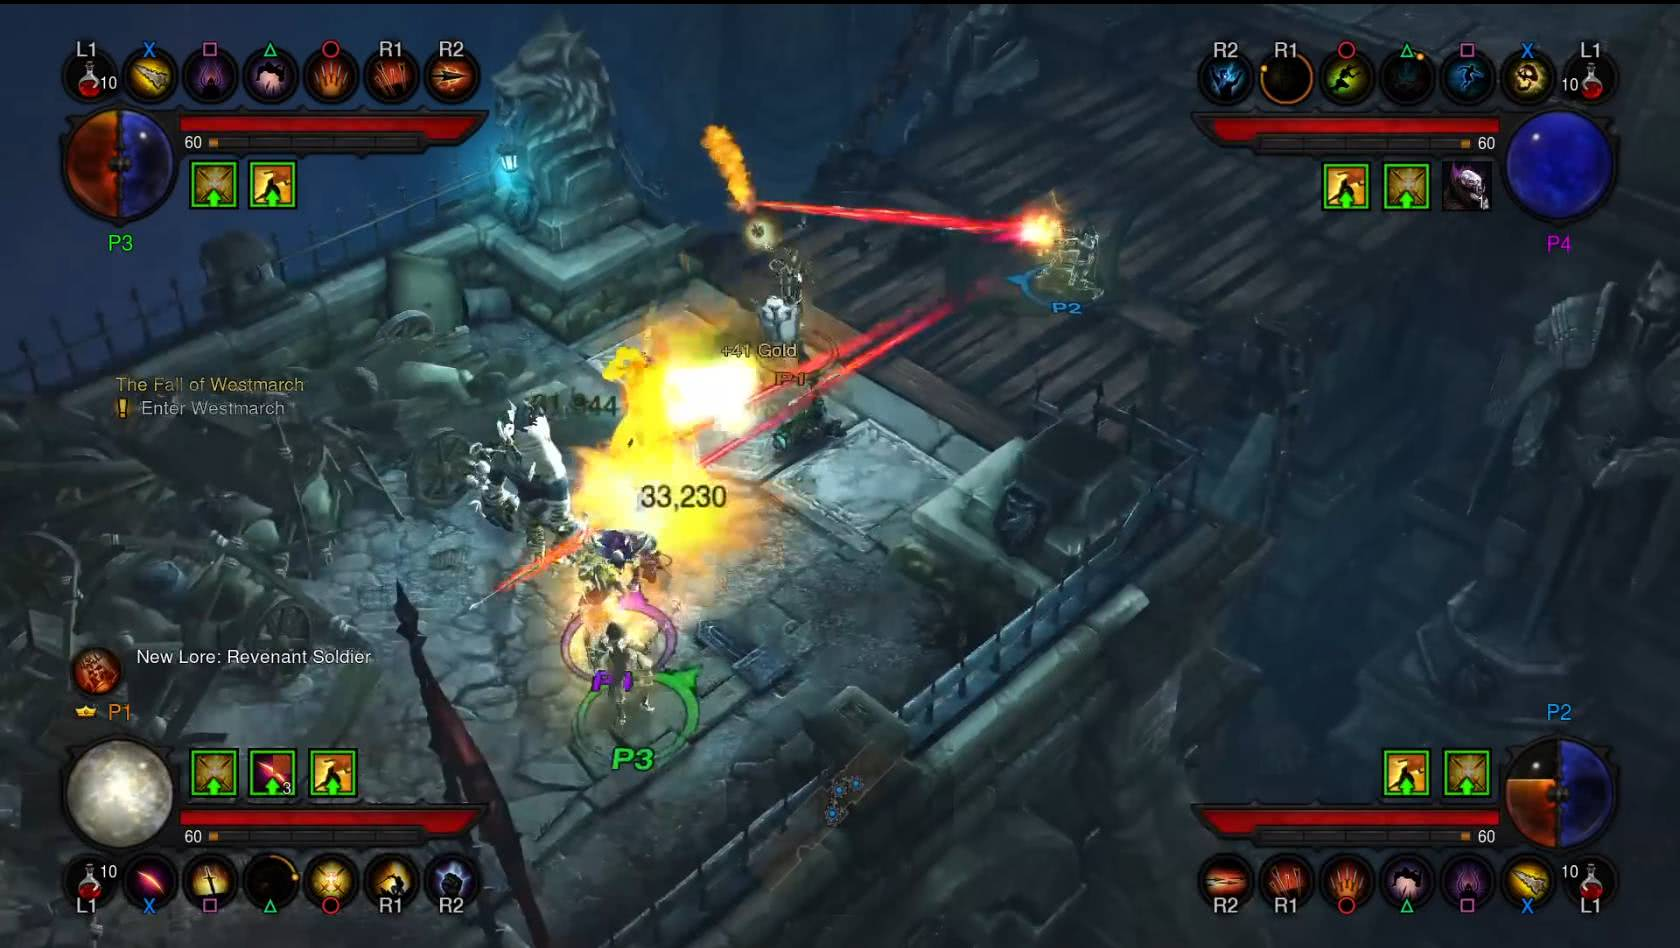 Screenshot aus der Playstatiion 4 Version von Diablo 3